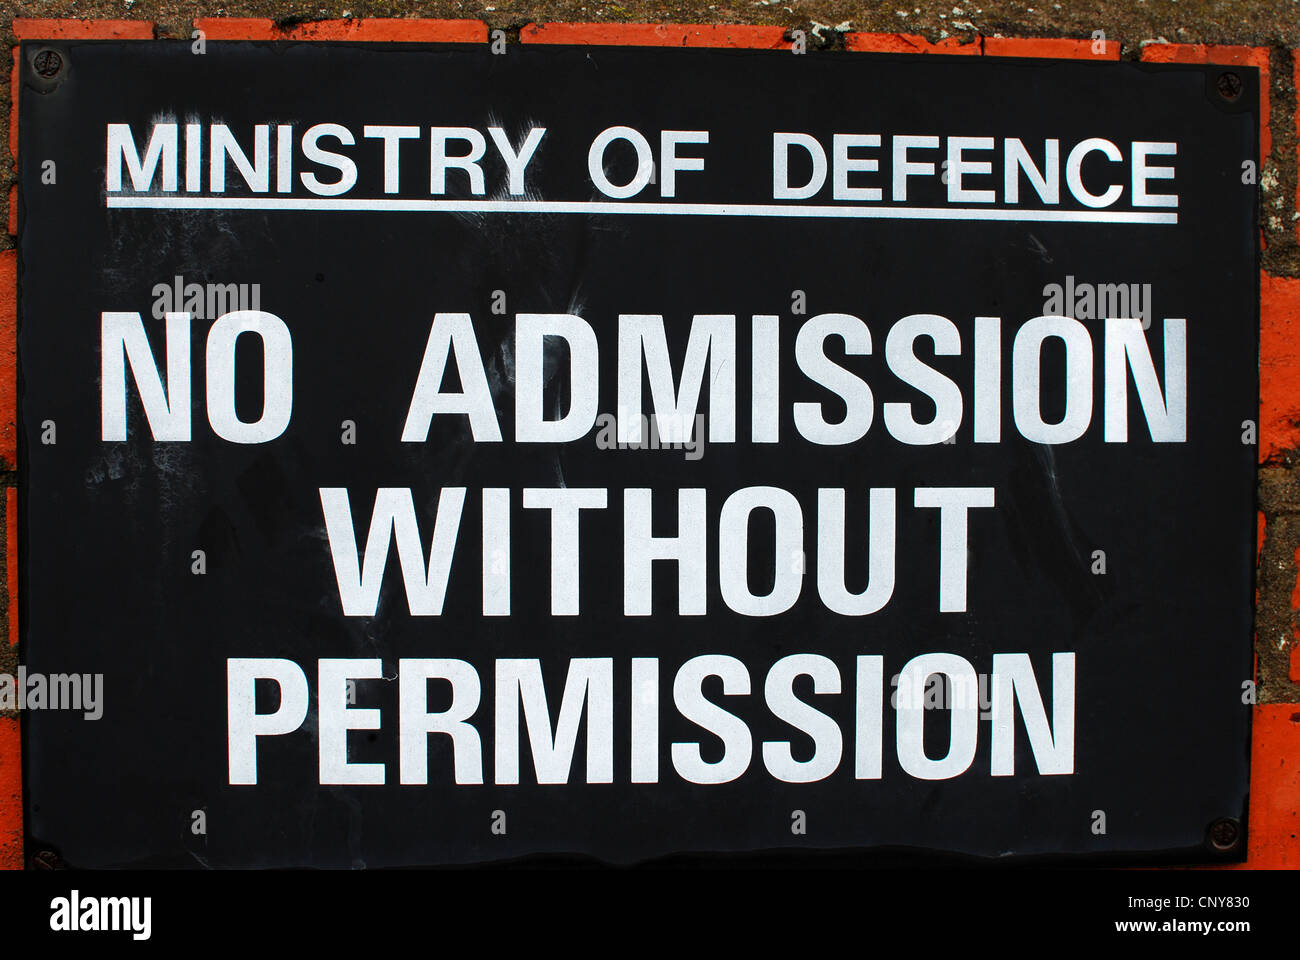 Ministry of defence no admission sign - Stock Image